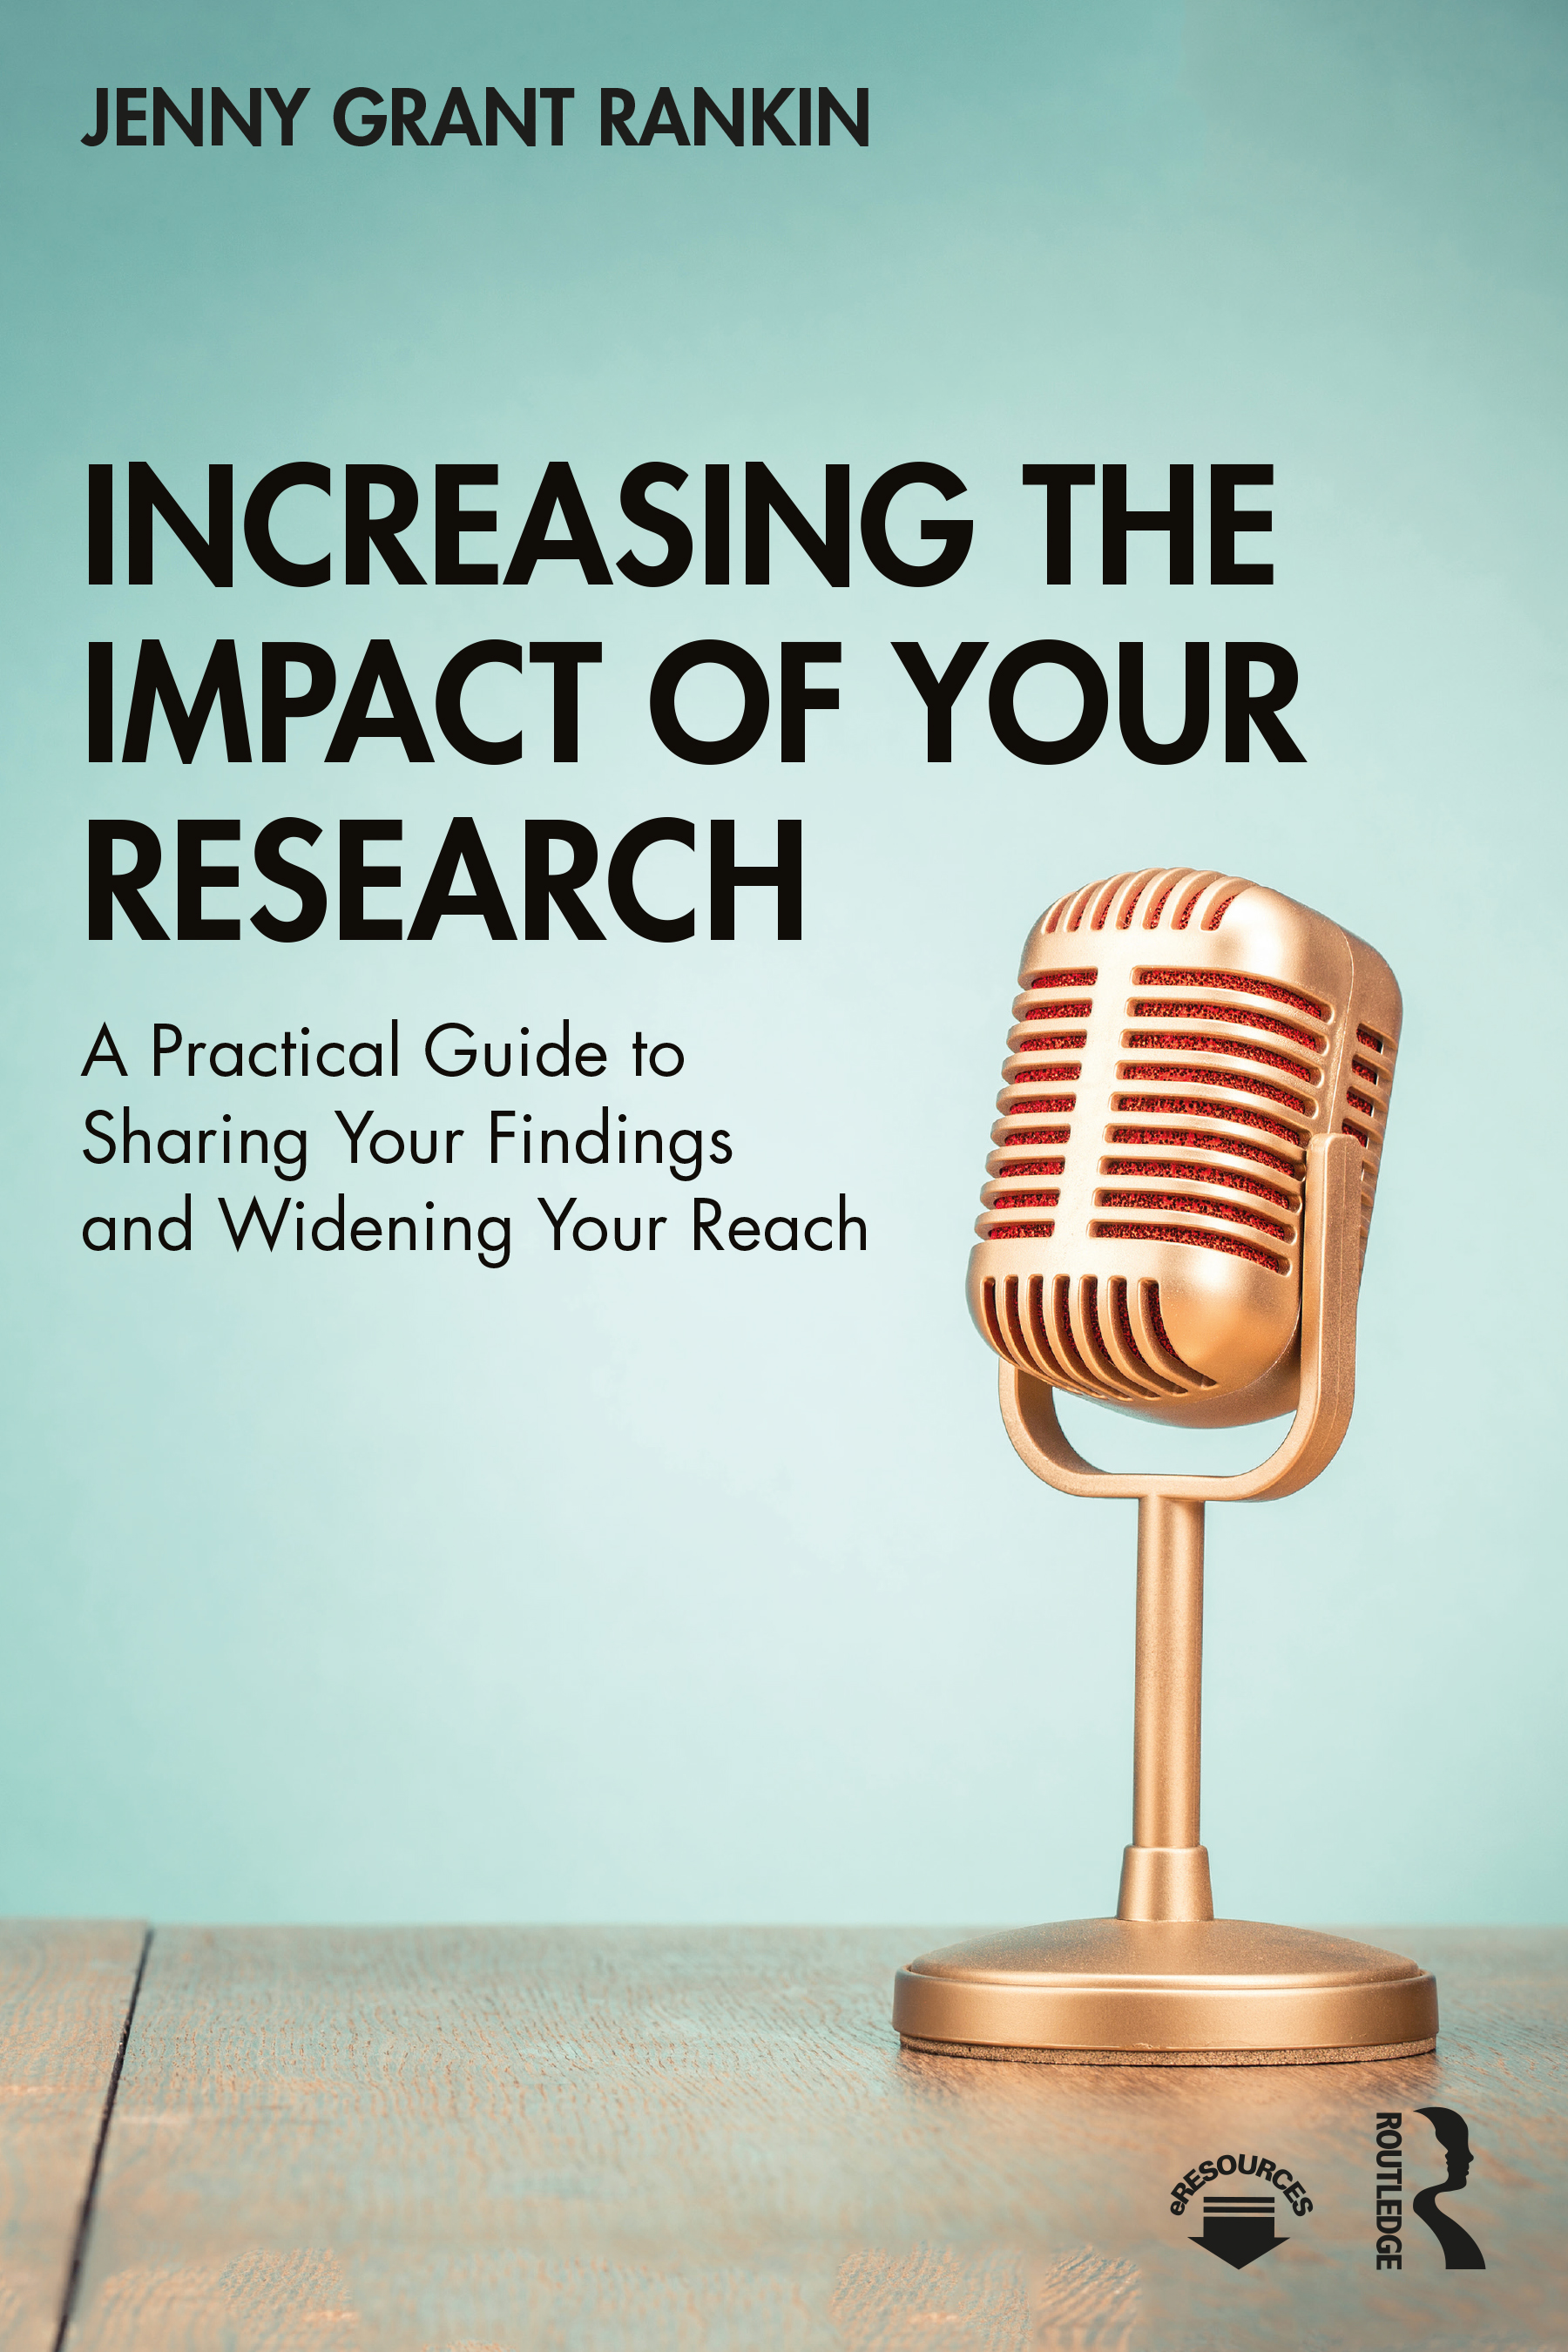 Increasing the Impact of Your Research: A Practical Guide to Sharing your Findings and Widening your Reach book cover